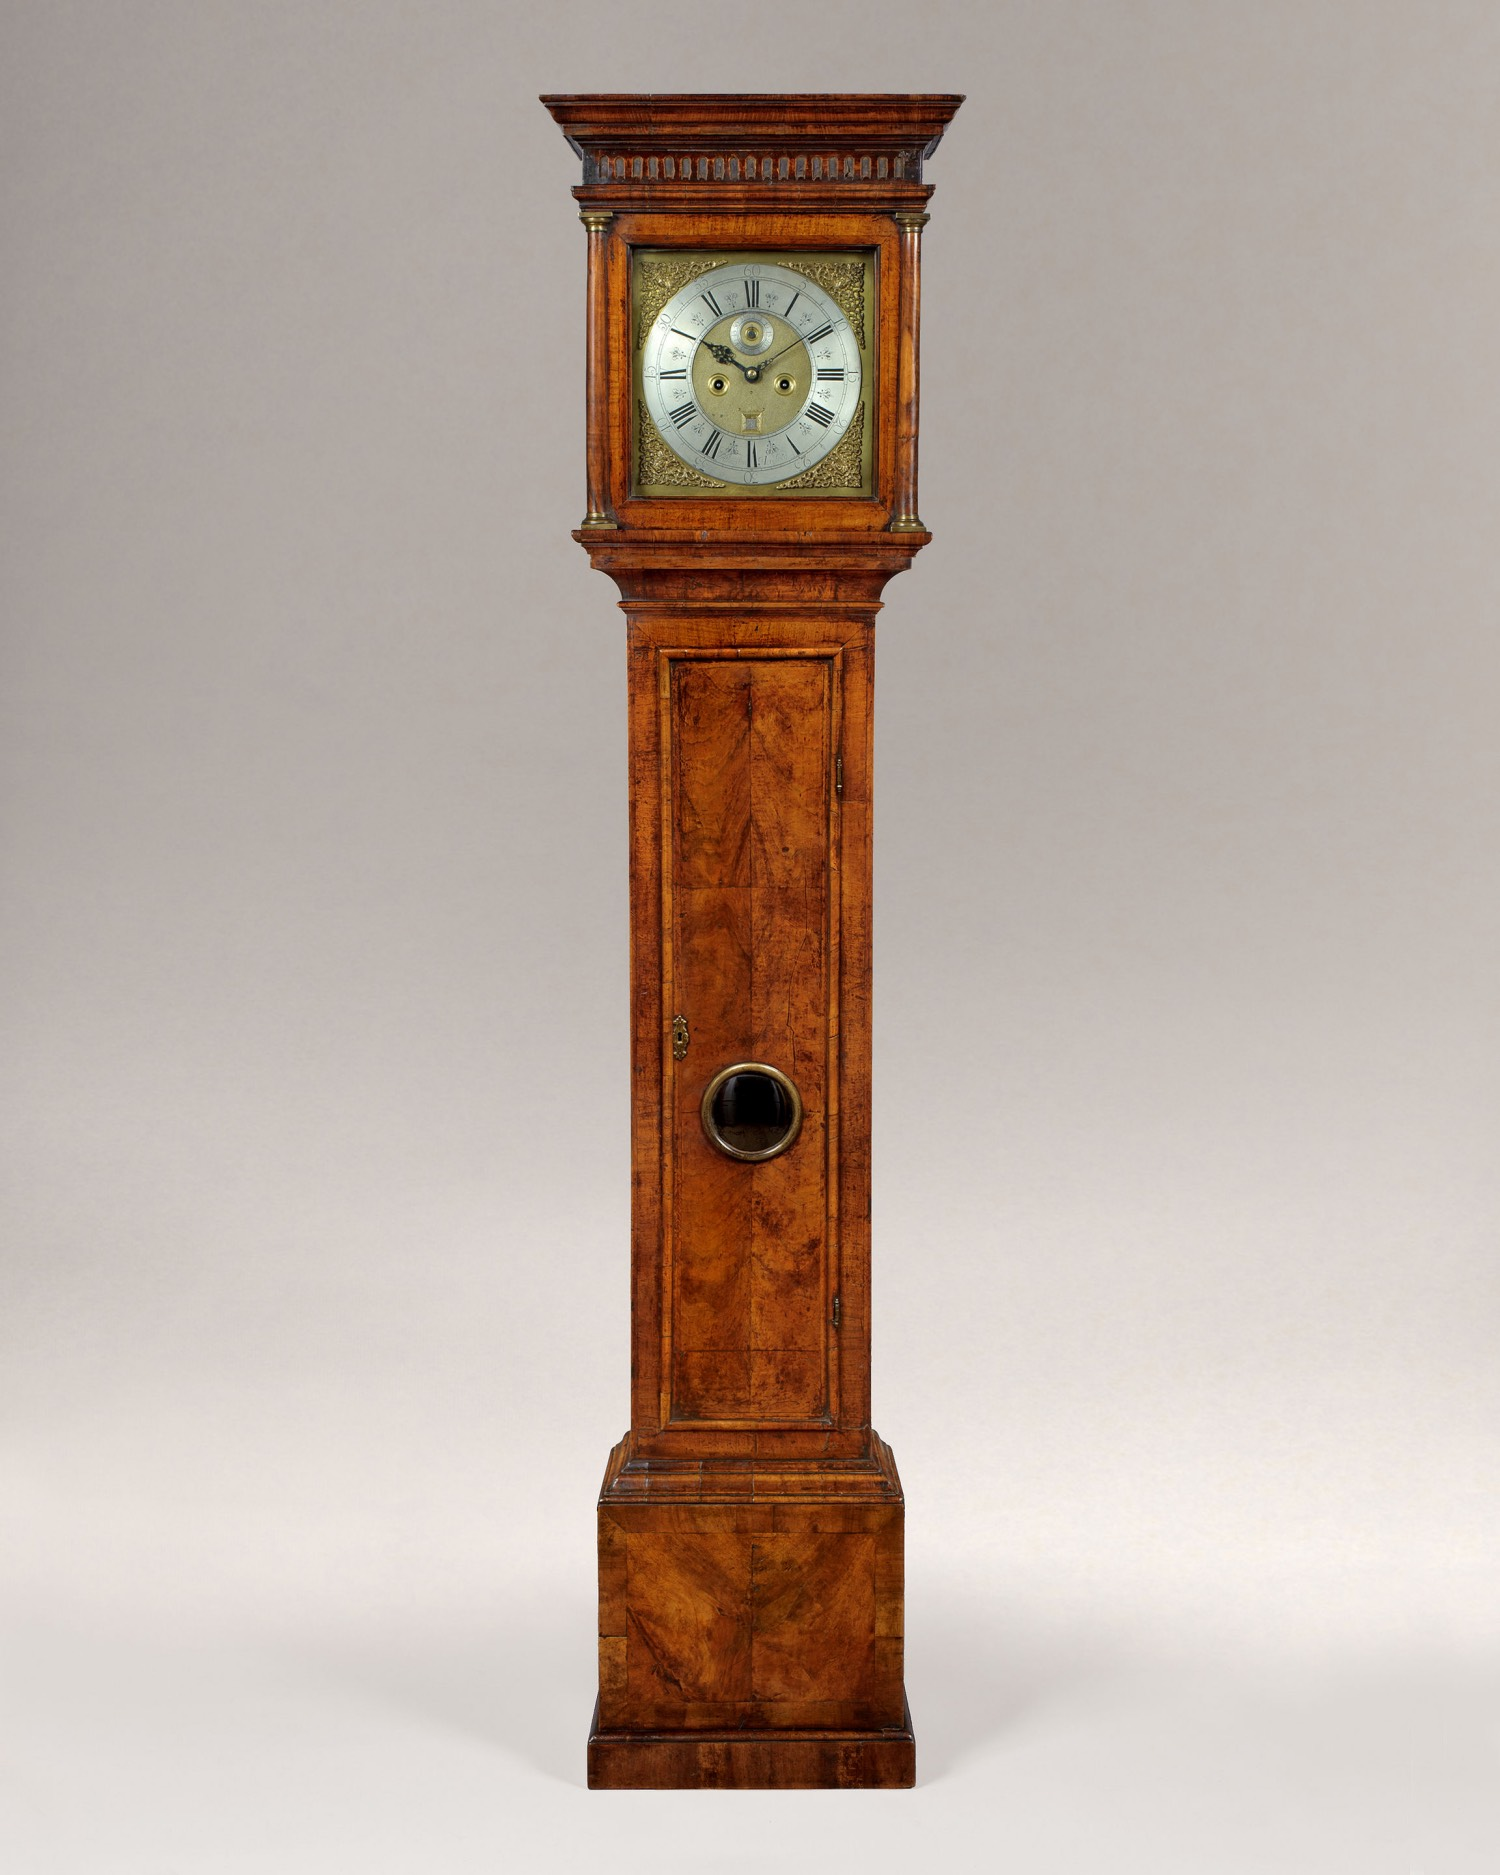 JOHN WITHERSTON. A RARE QUEEN ANNE PERIOD PROVINCIAL SQUARE DIAL WALNUT LONGCASE CLOCK.